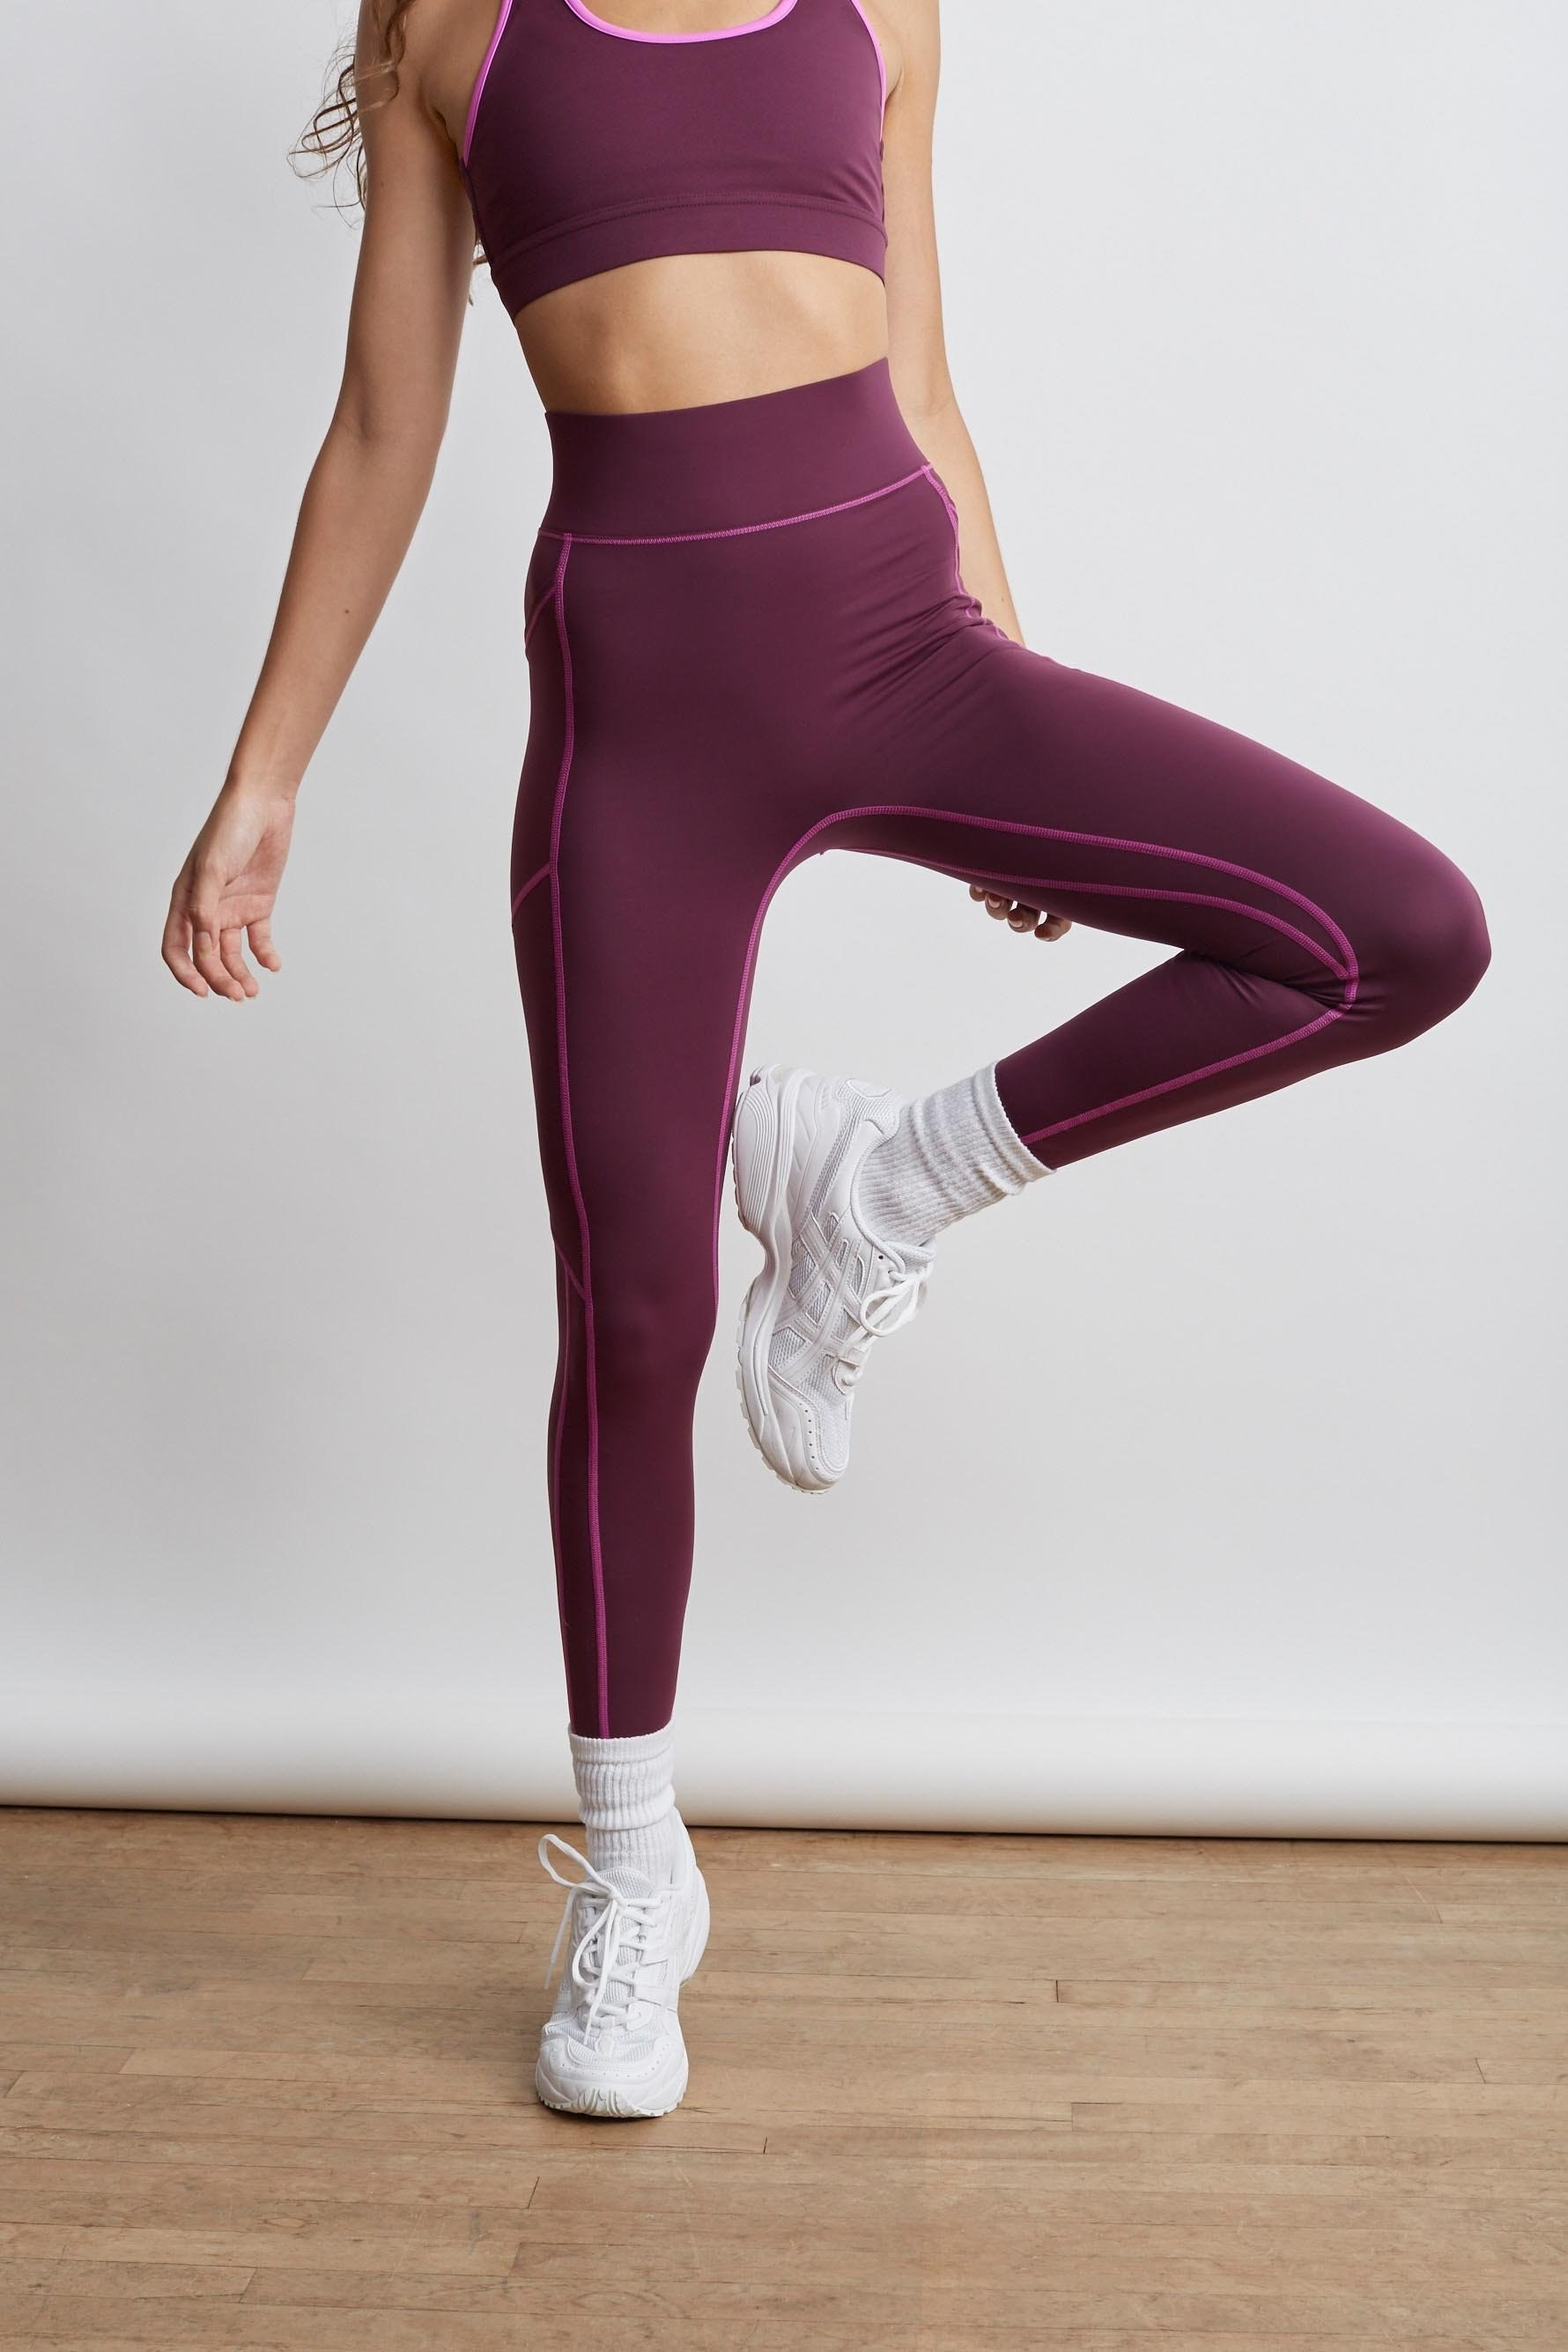 Model wears mulberry high-rise leggings with hot pink stitching on the legs, hips, and waist